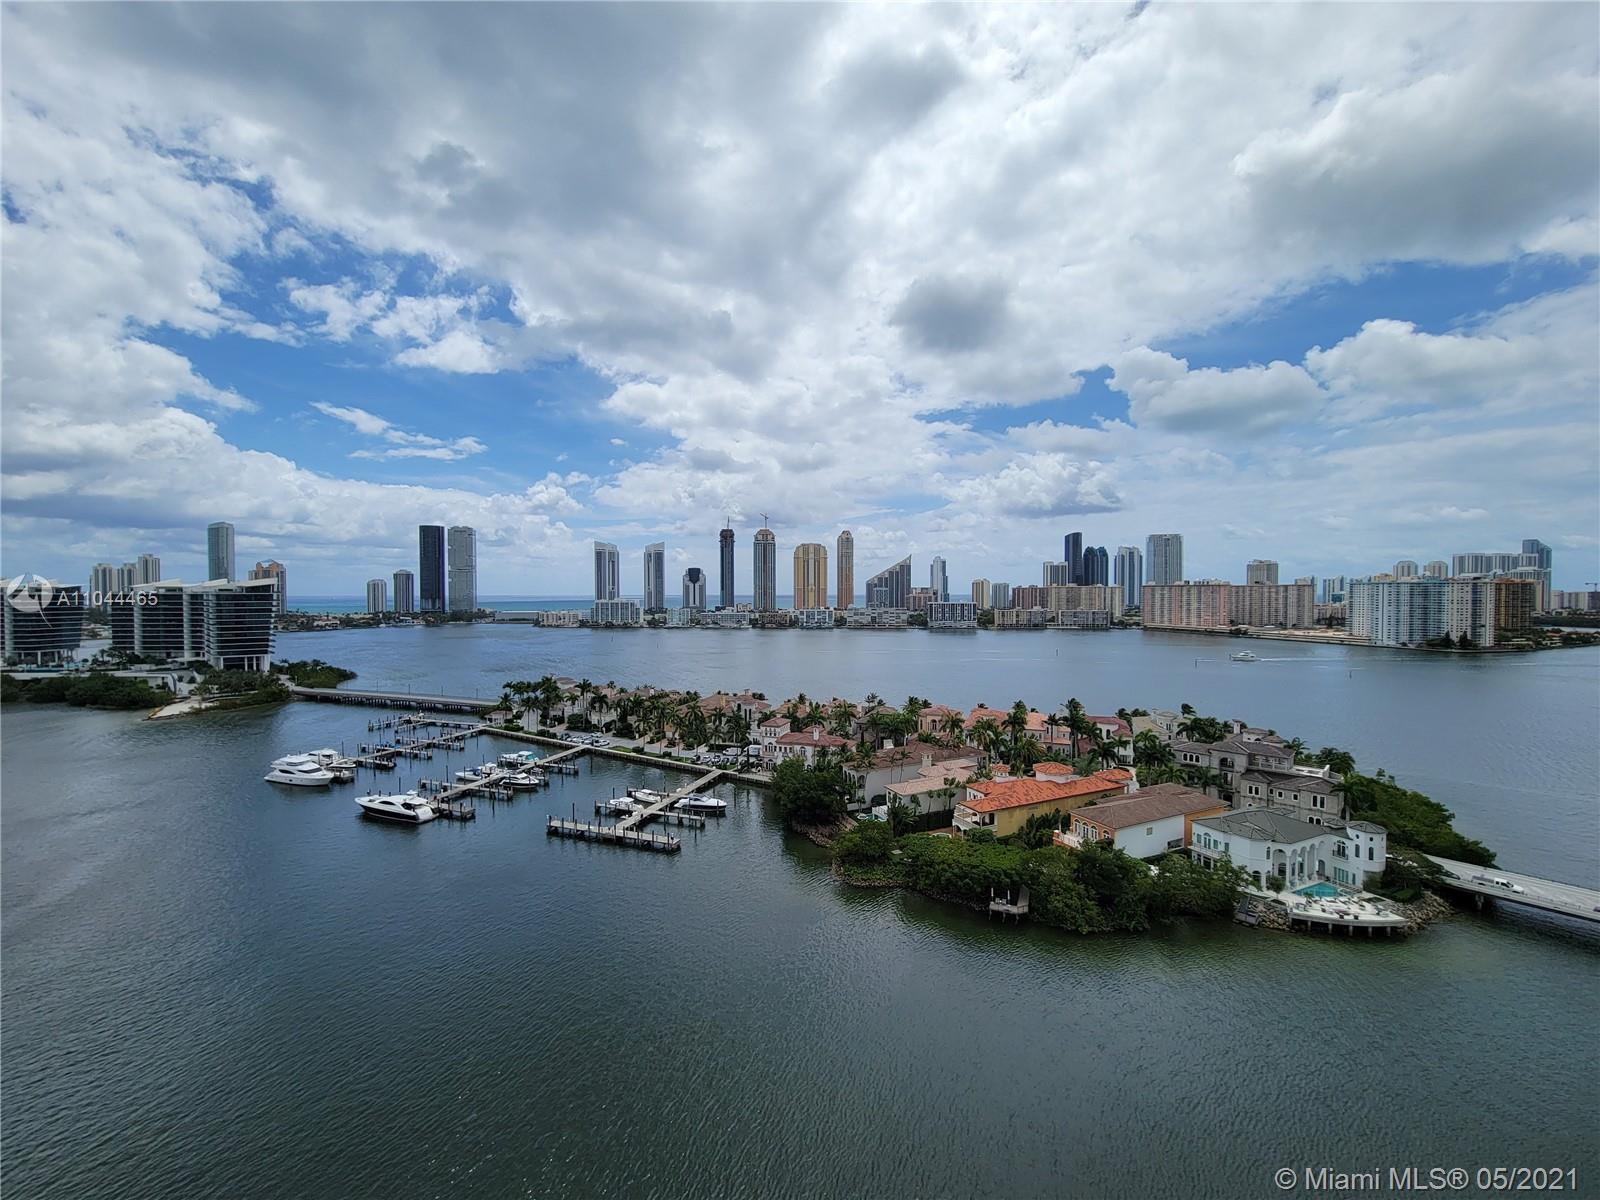 LOOK NO FURTHER! HERE IS YOUR OPPORTUNITY TO ENJOY THIS BEAUTIFUL 2/2.5 OCEANVIEW CONDO IN THE HIGHL